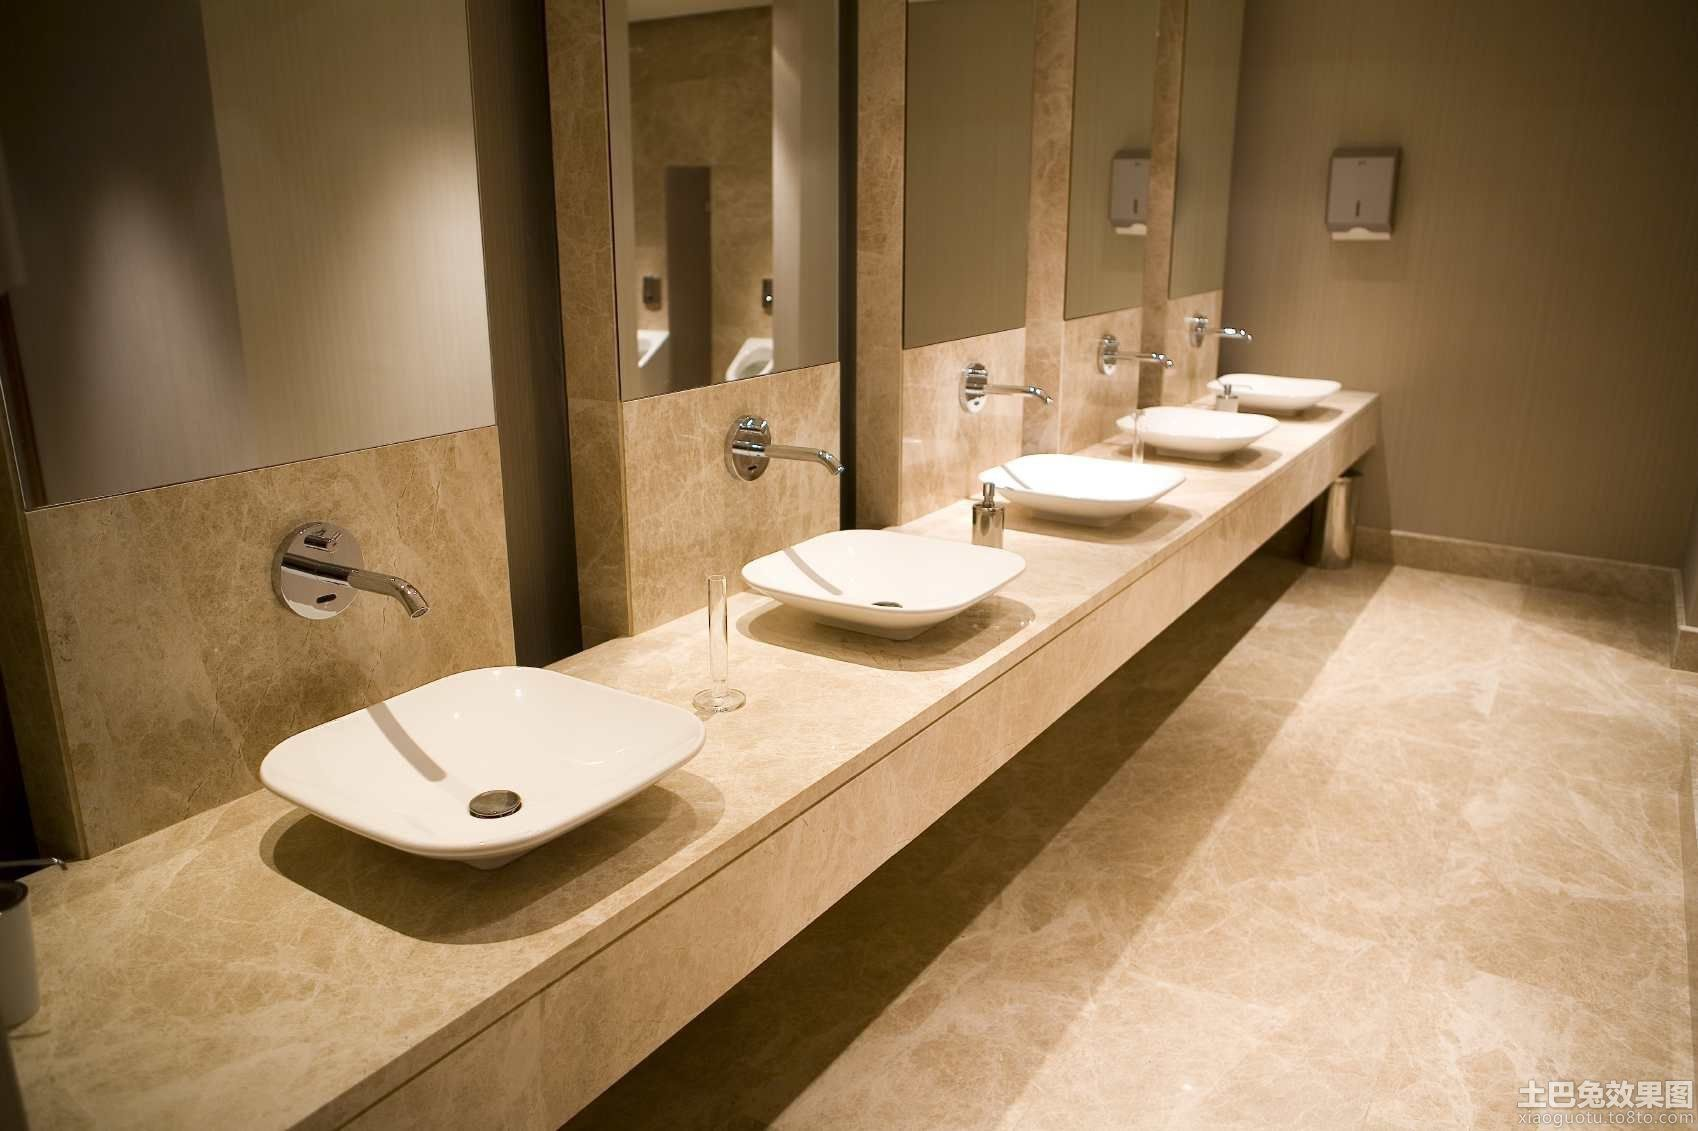 Commercial restroom design for Washroom design ideas